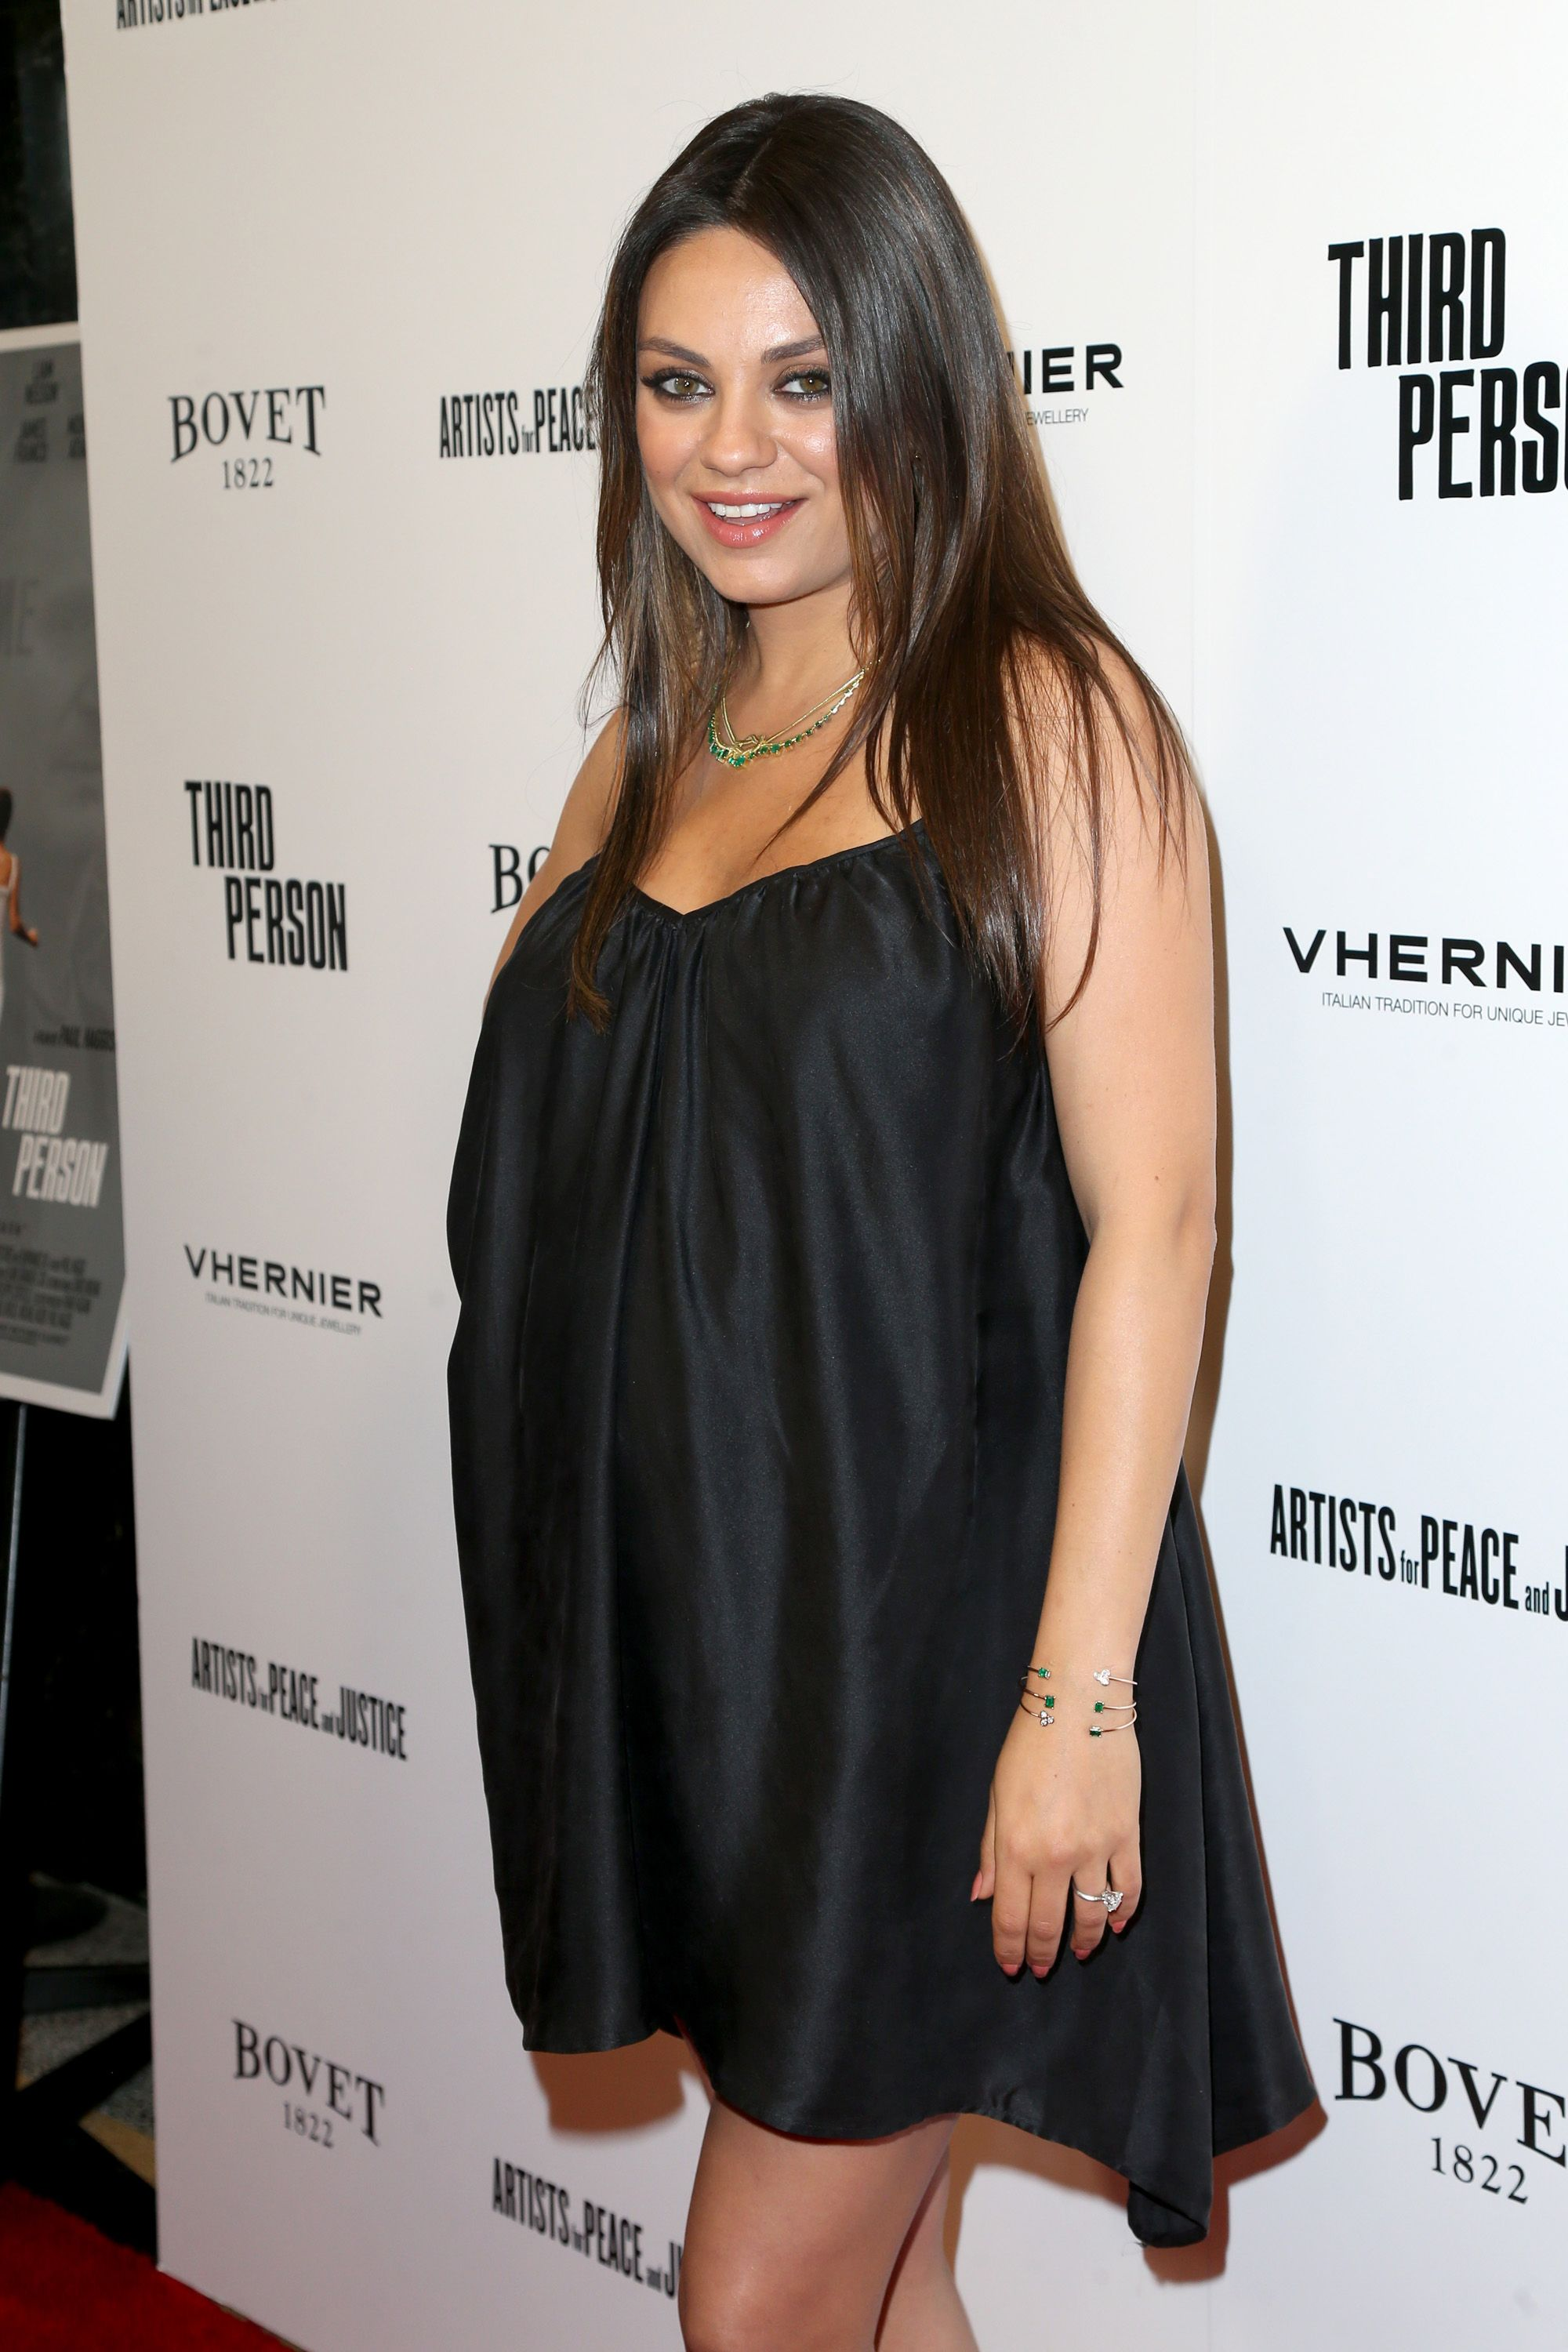 """HOLLYWOOD, CA - JUNE 09:  Actress Mila Kunis attends the premiere of Sony Picture Classics' """"Third Person"""" at Linwood Dunn Theater at the Pickford Center for Motion Study on June 9, 2014 in Hollywood, California.  (Photo by Frederick M. Brown/Getty Images)"""